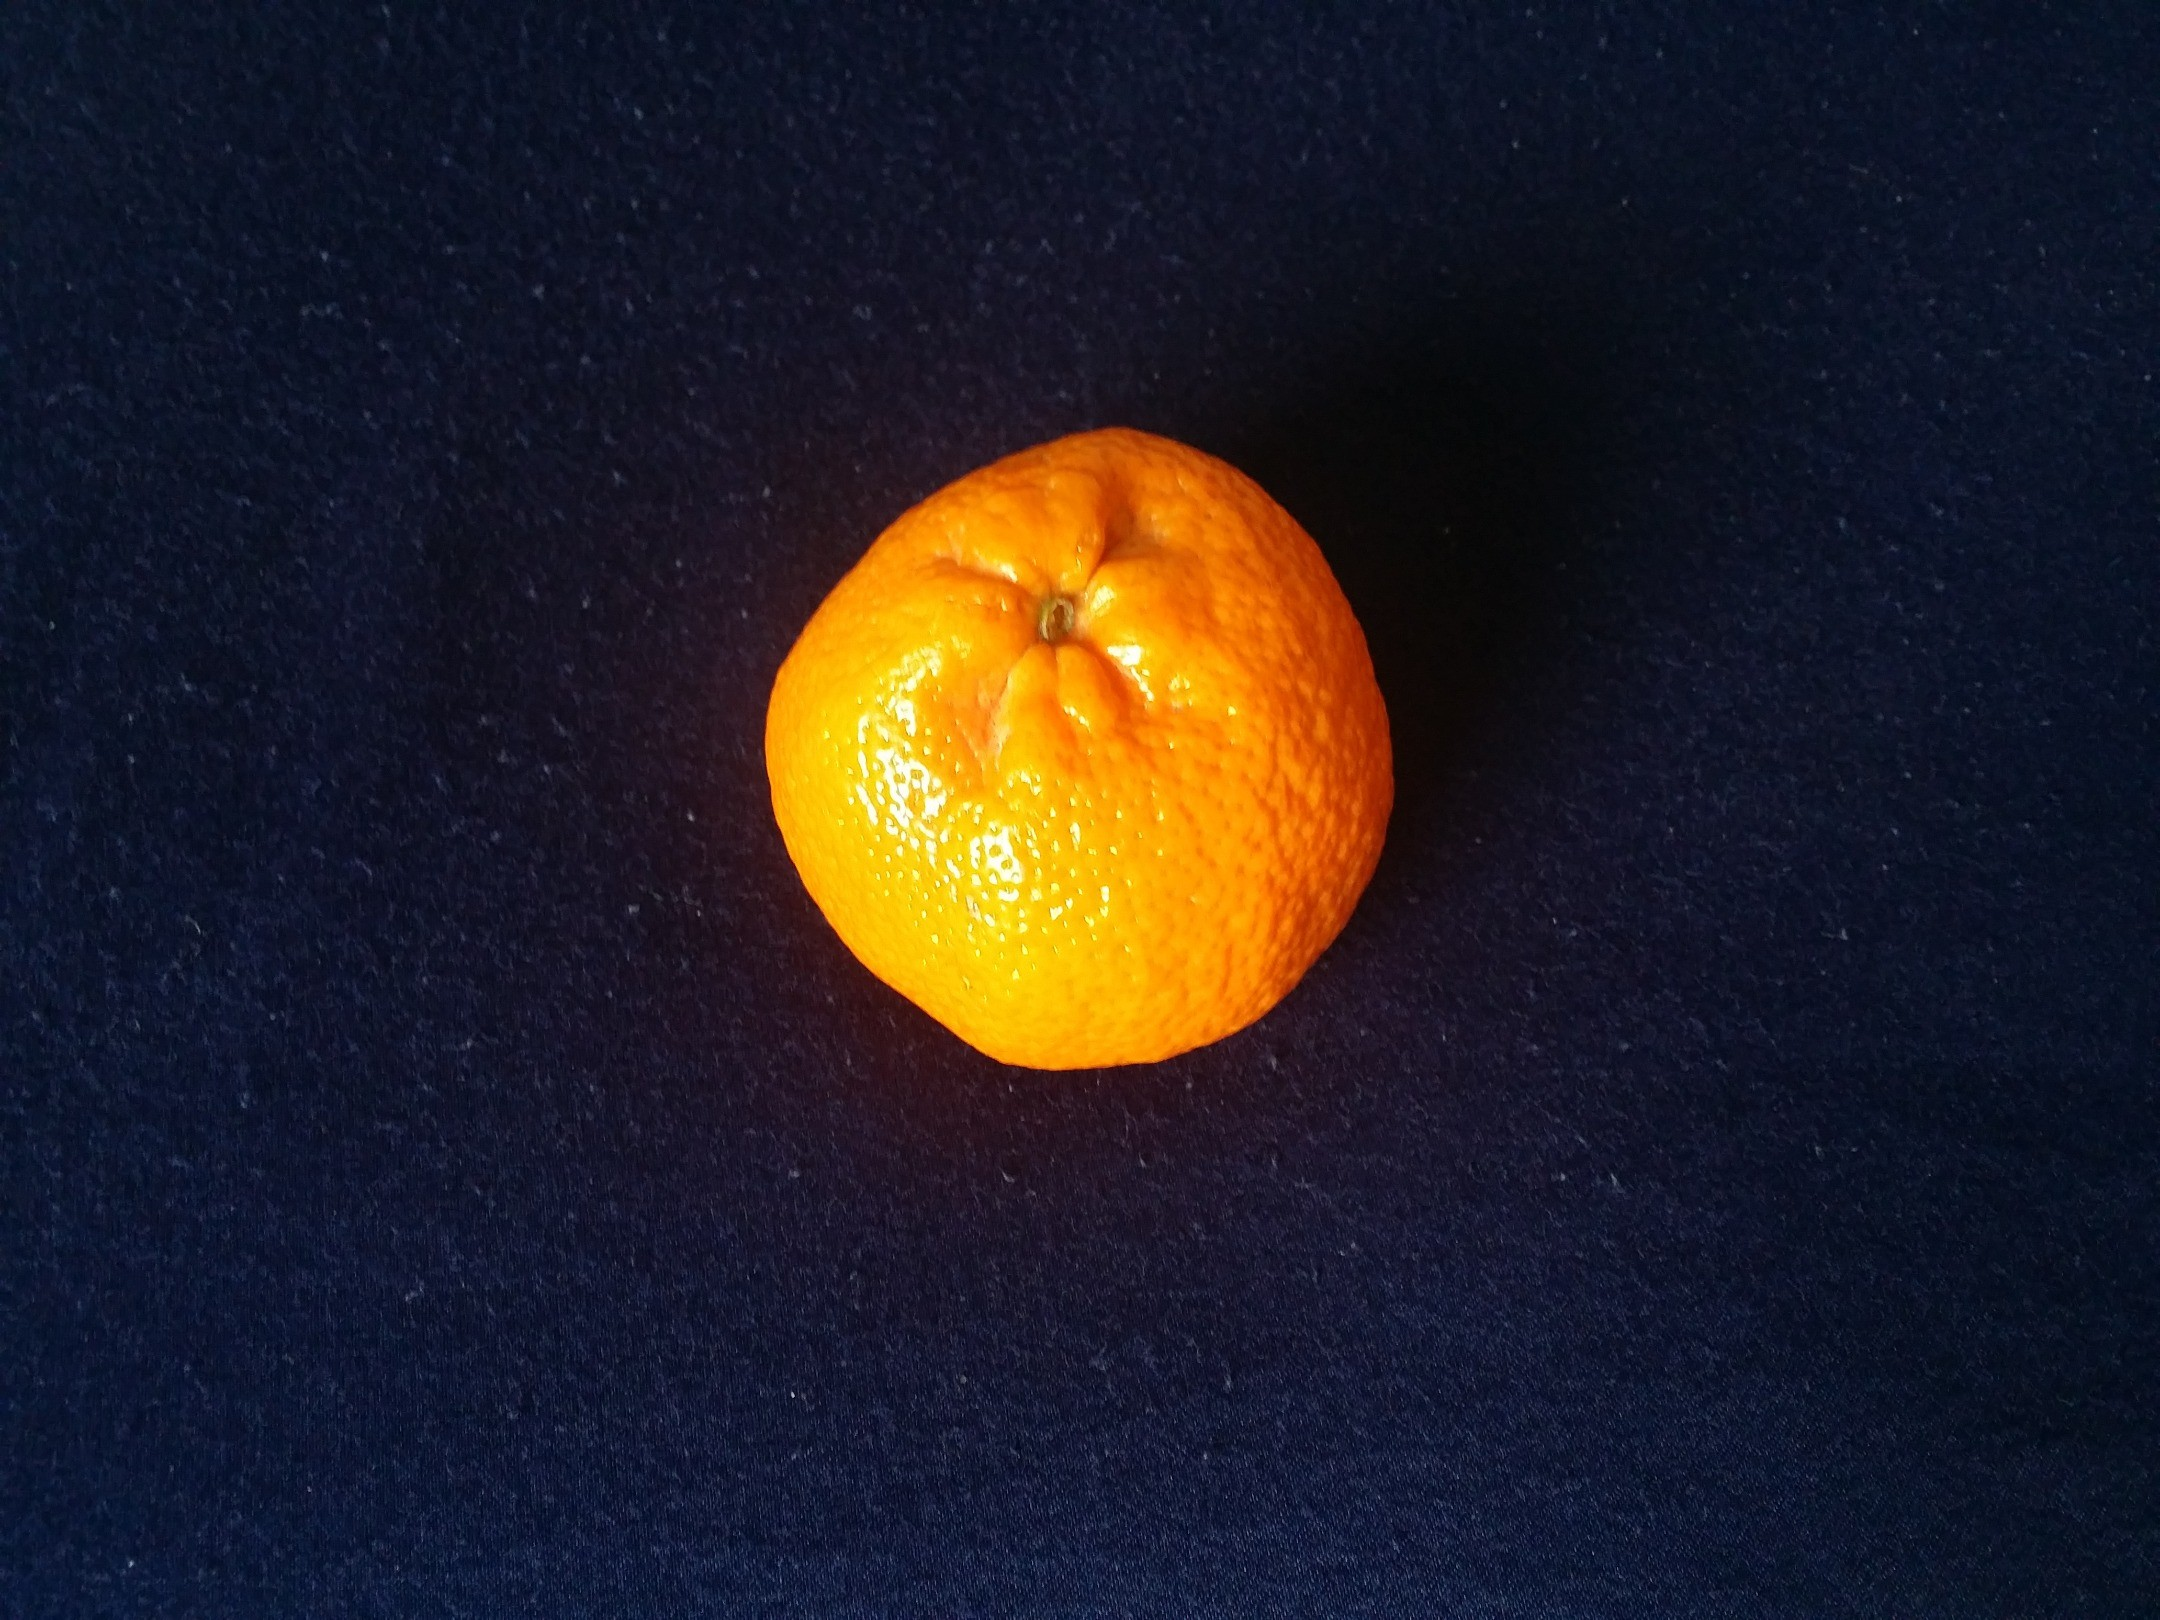 2160x1620 Africa, photo, free, Clementine, fruit, midnight blue background